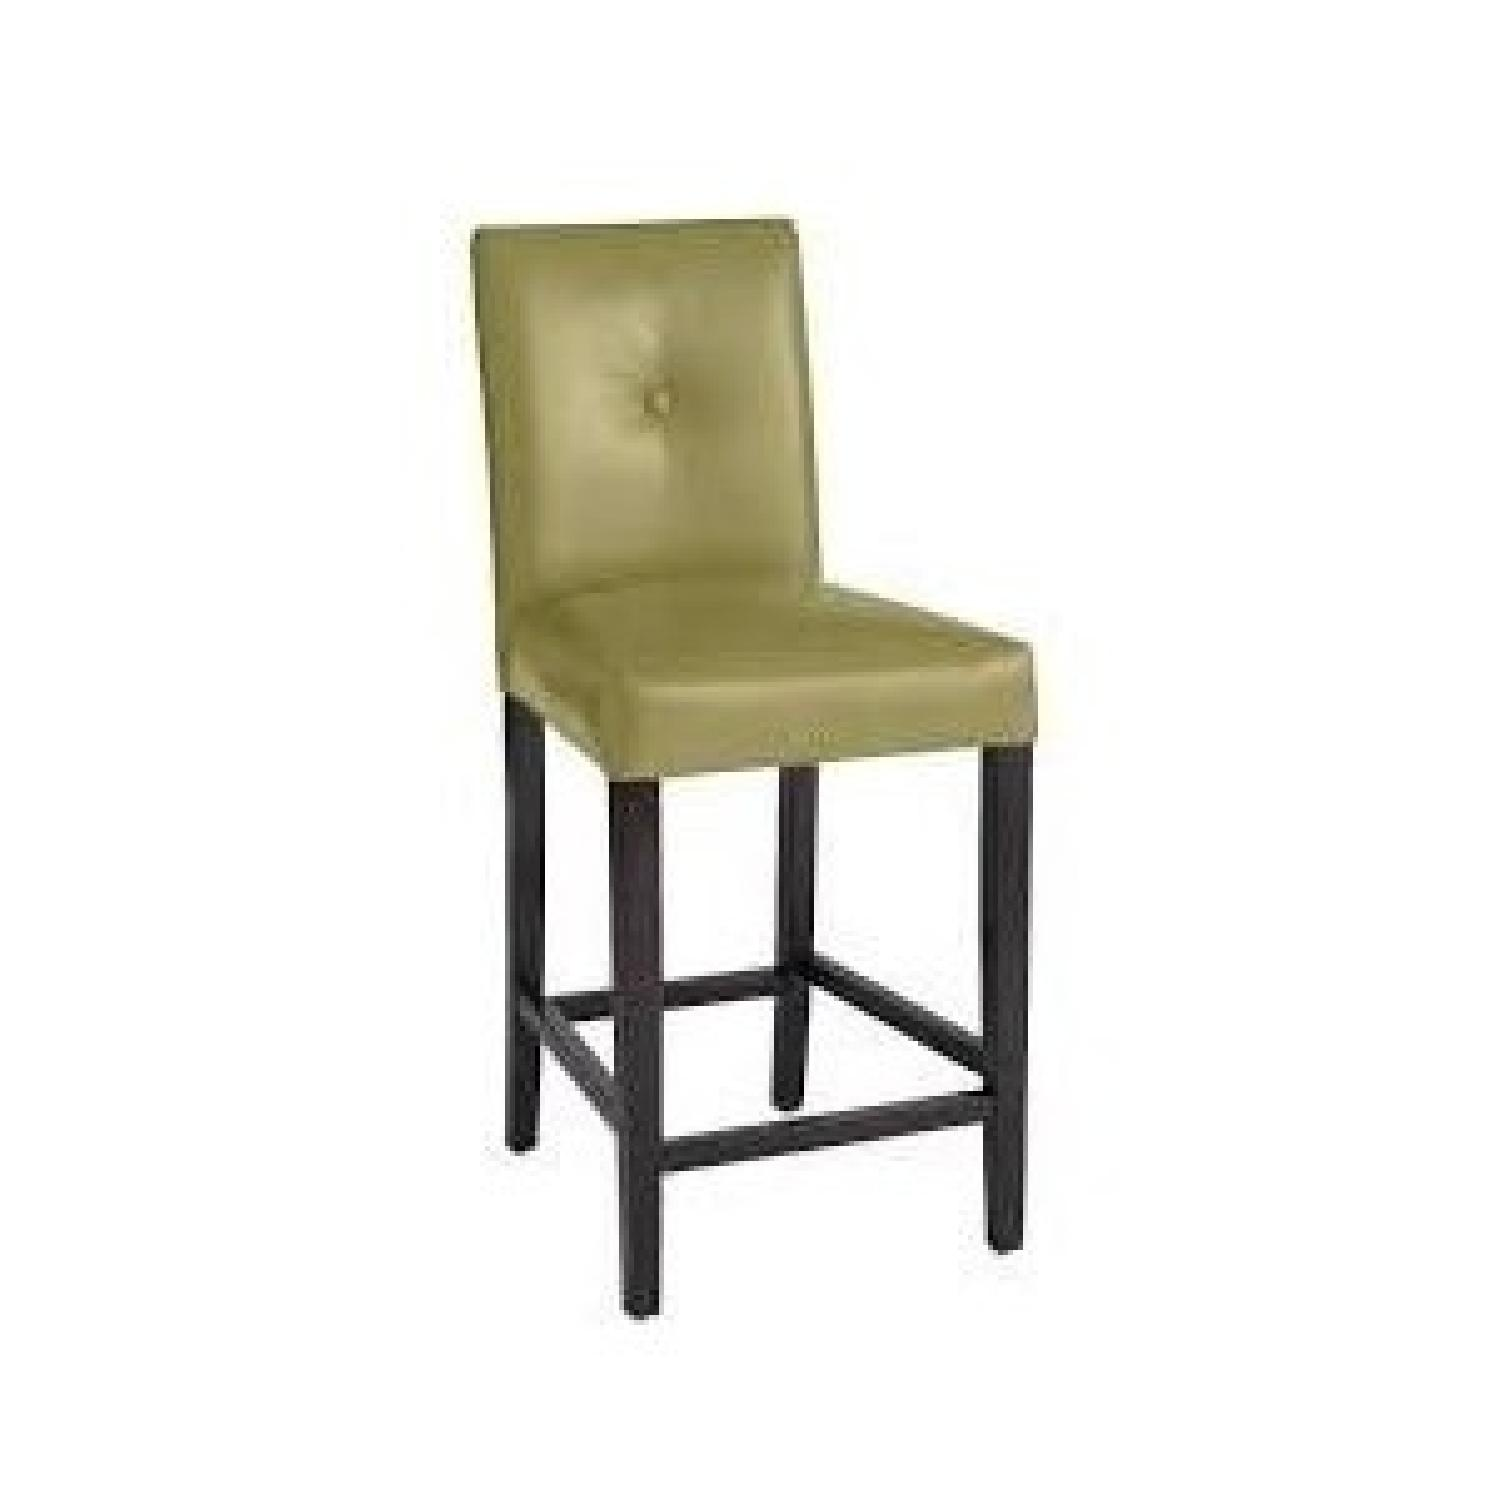 Pier 1 Mason Counter Height Chairs